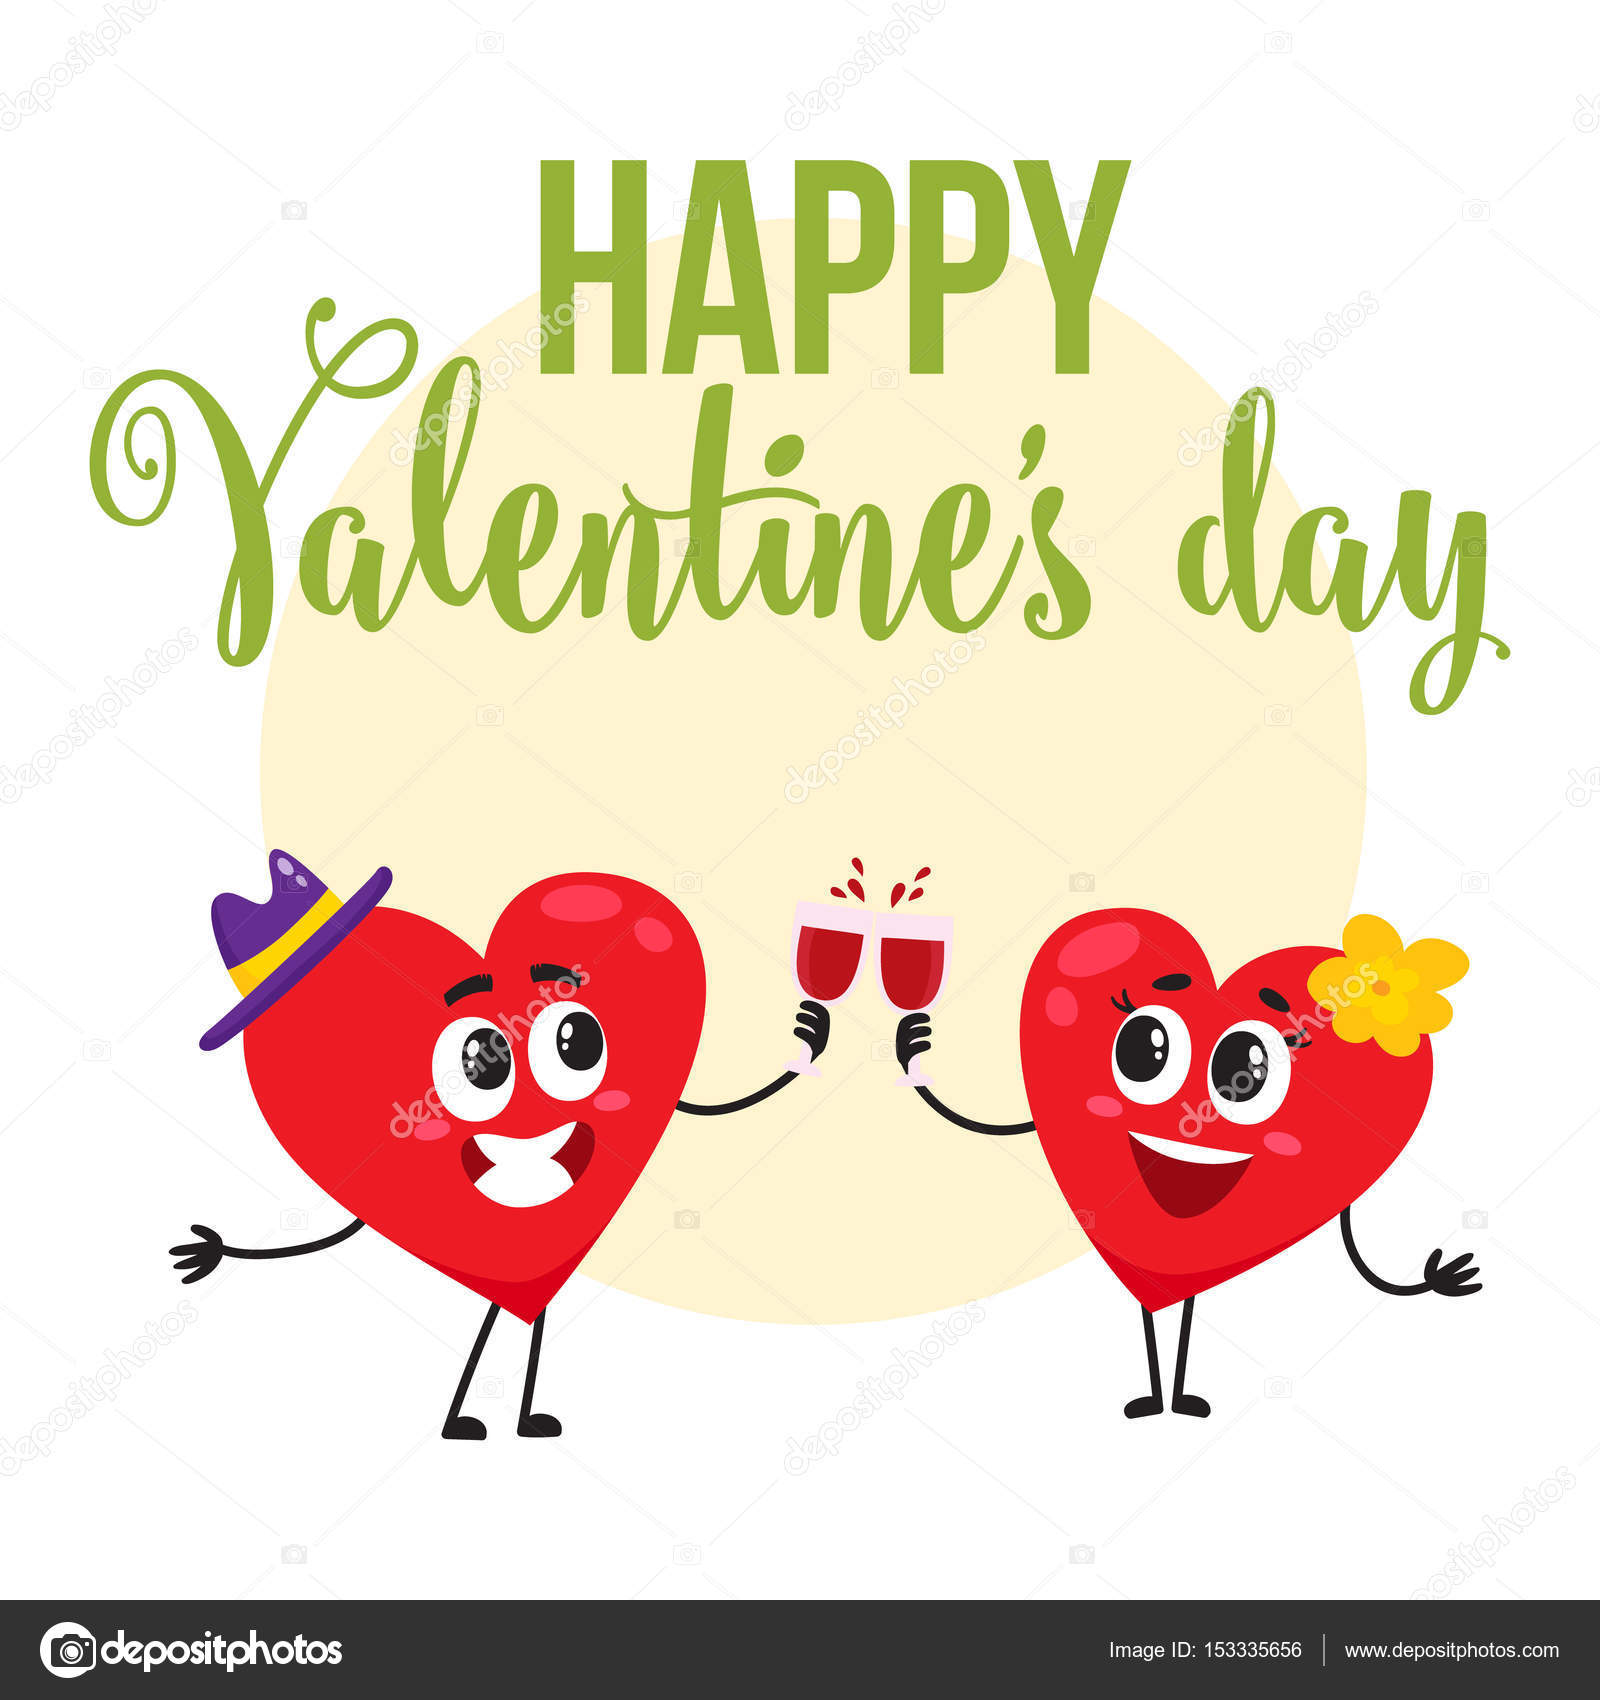 Valentine day greeting card design with heart characters clinking valentine day greeting card design with heart characters clinking glasses stock vector kristyandbryce Choice Image